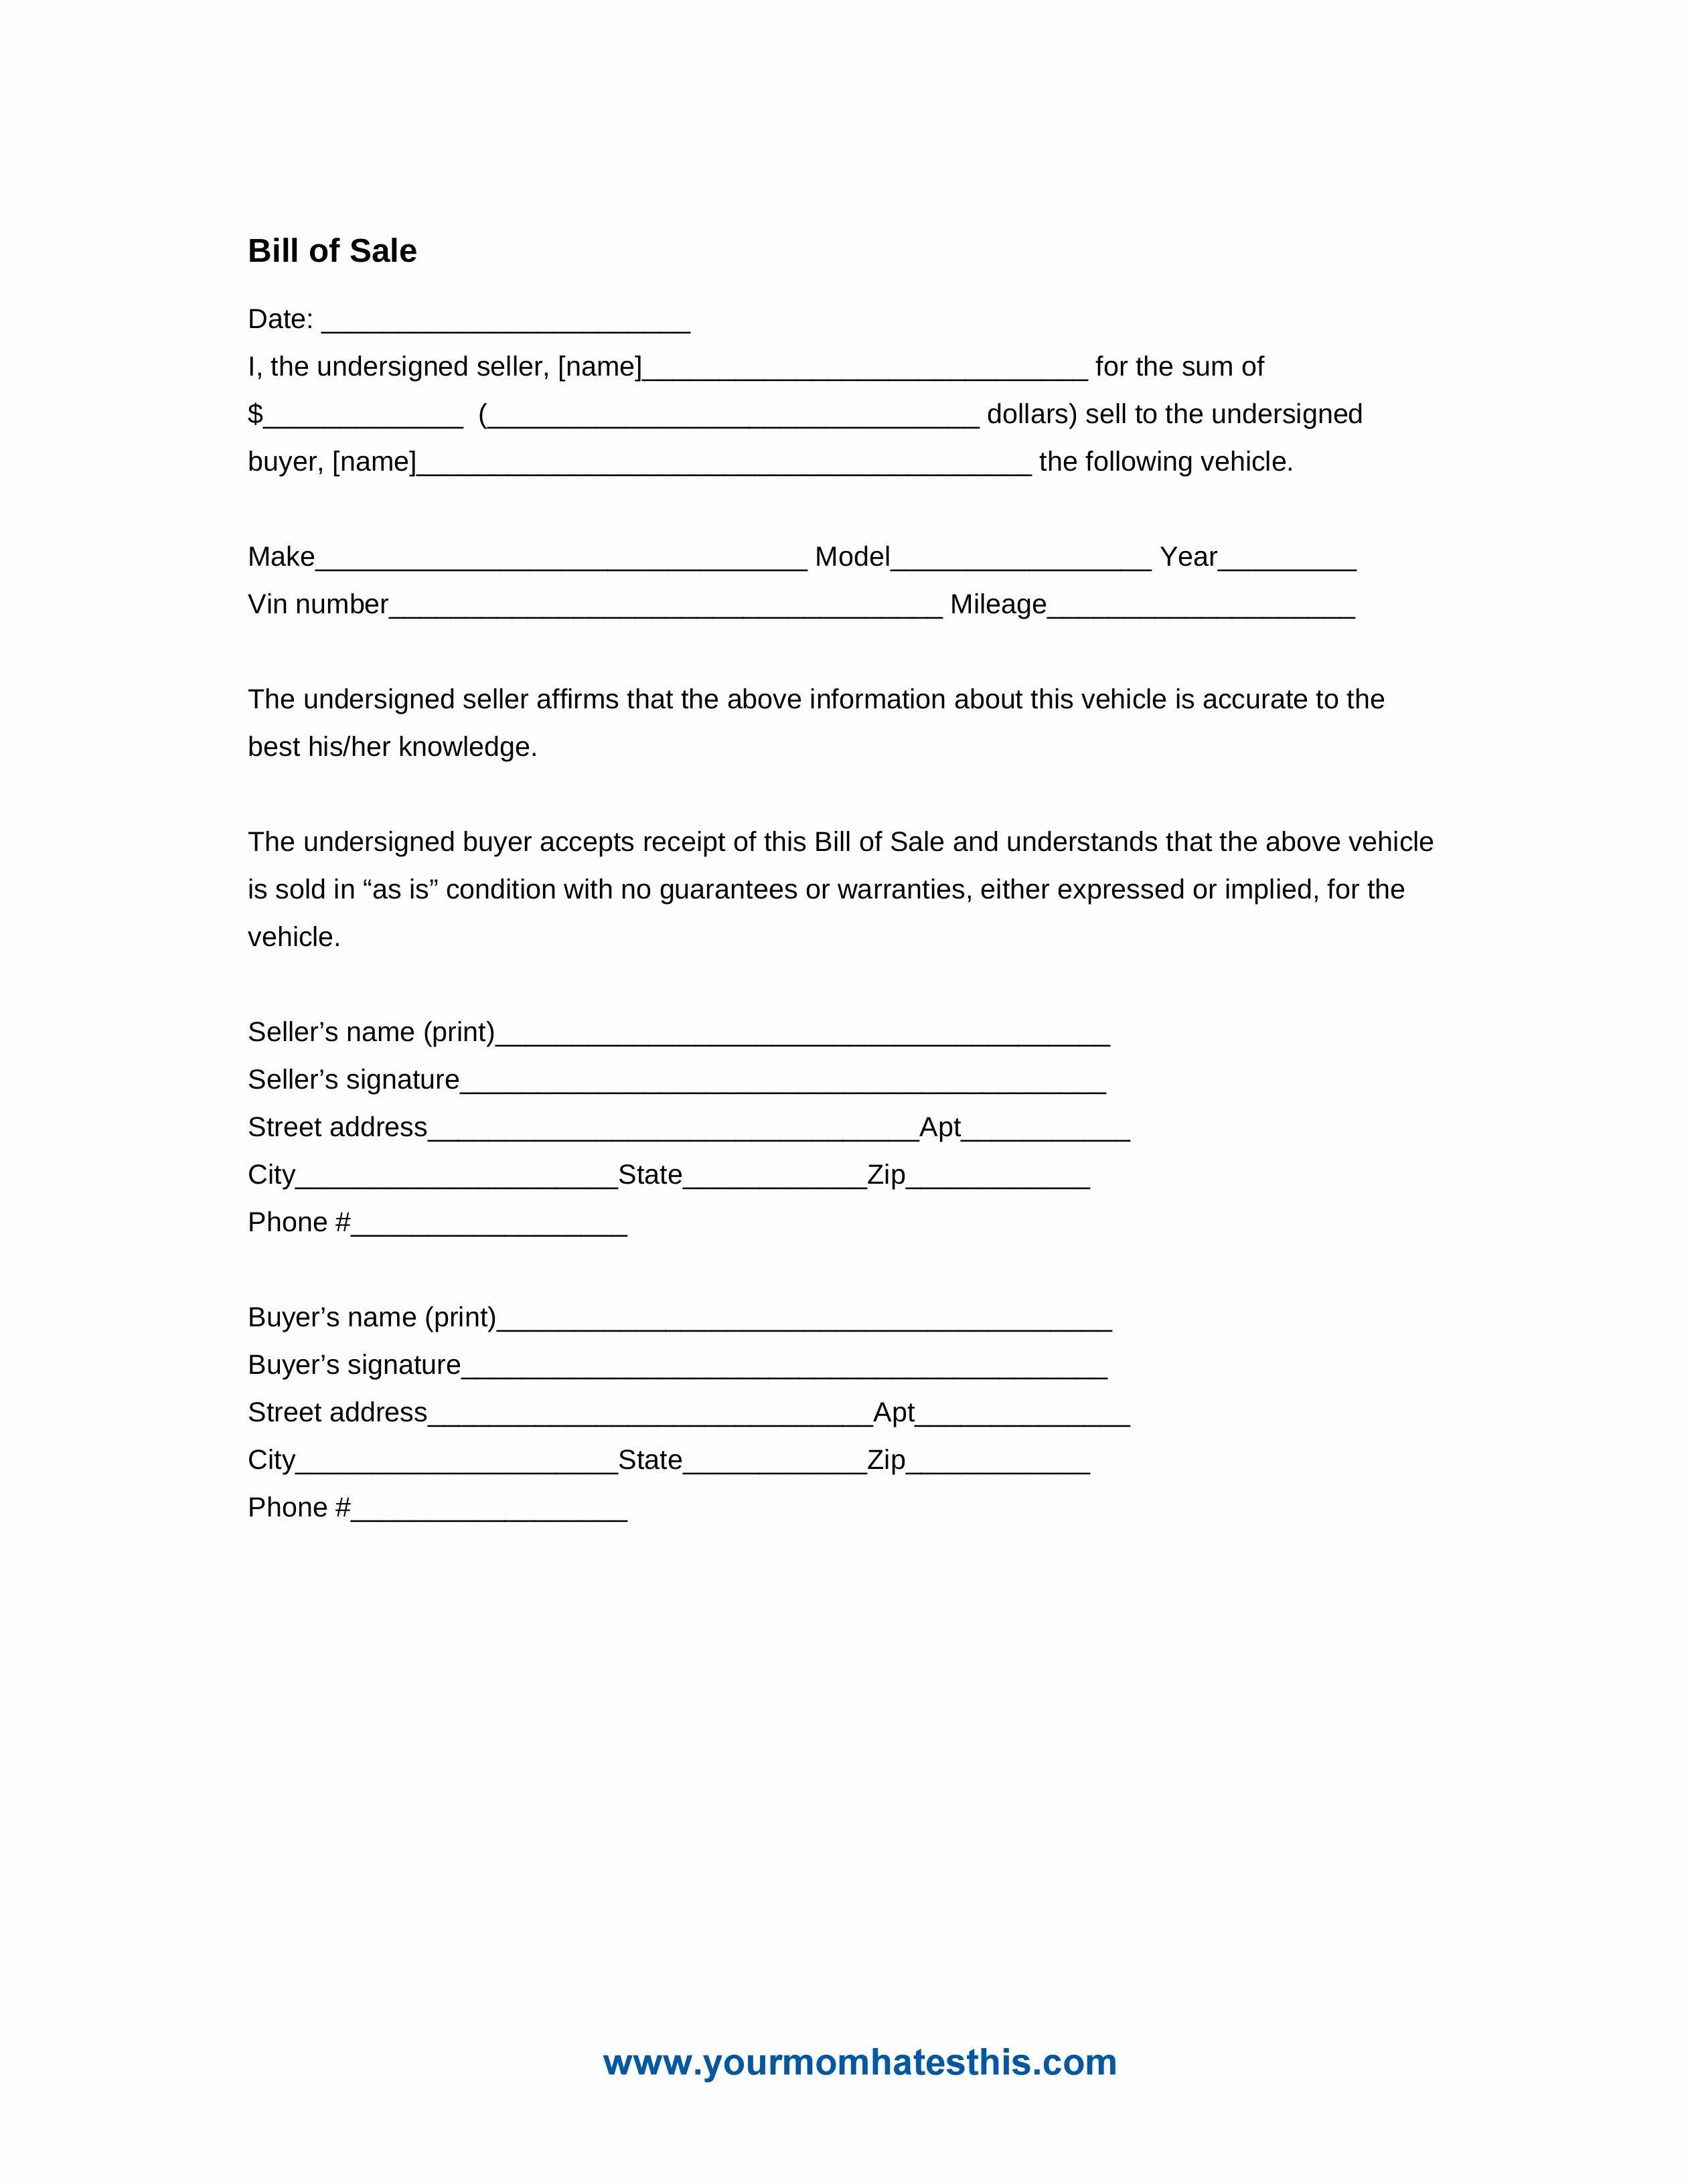 Bill Of Sale Free form Inspirational Download Bill Sale form Pdf